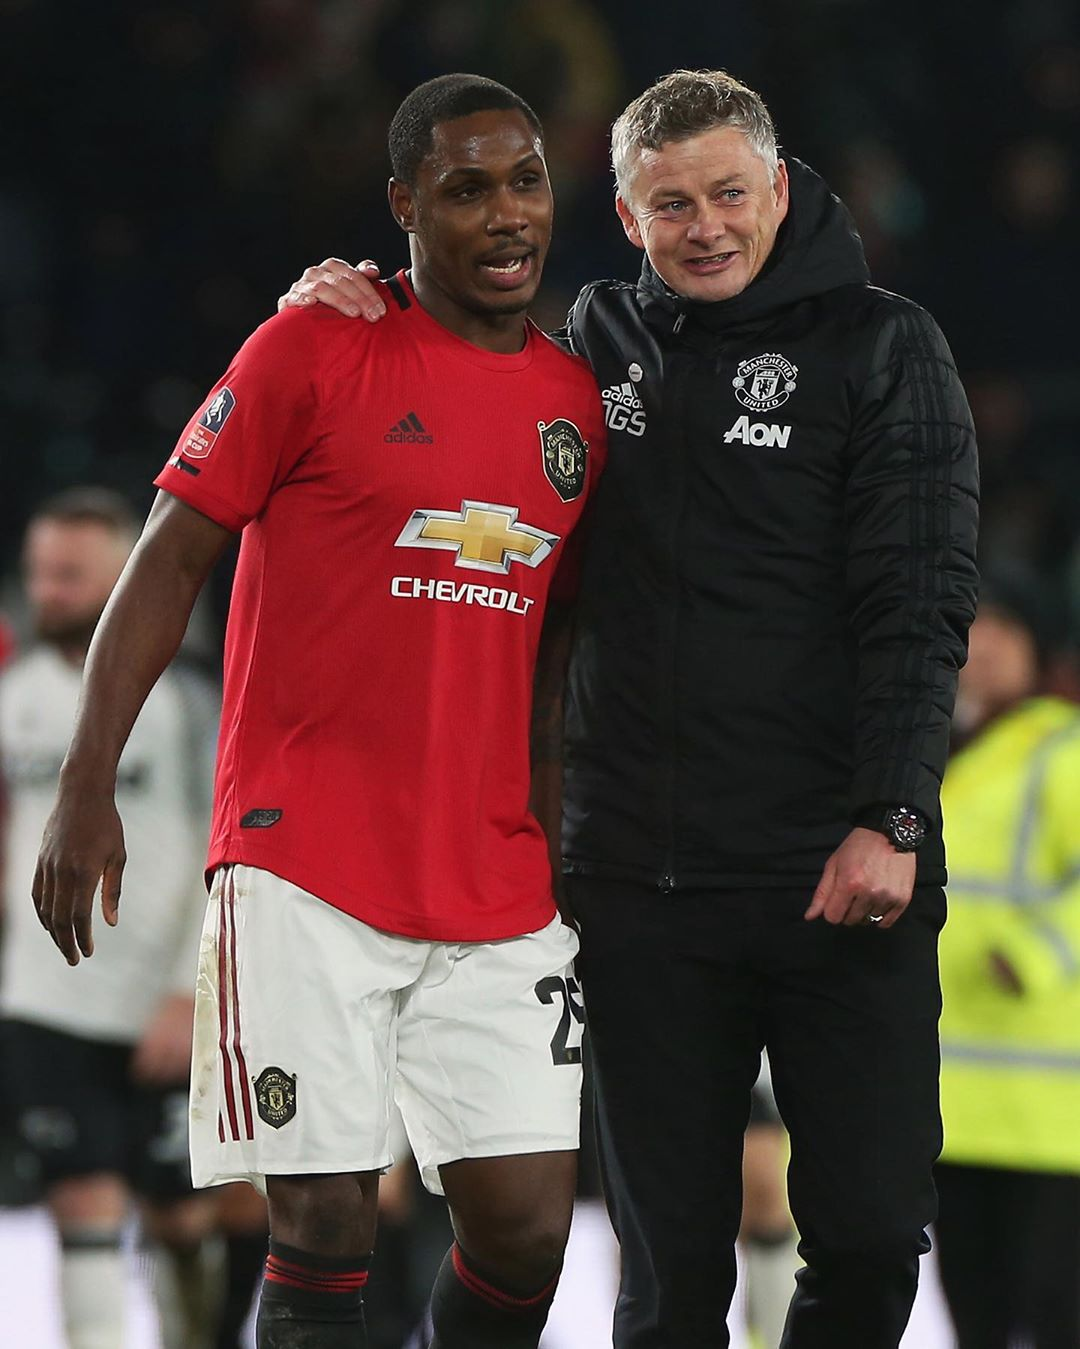 Super Eagels star, Odion Ighalo's Man. U loan extended to 2021